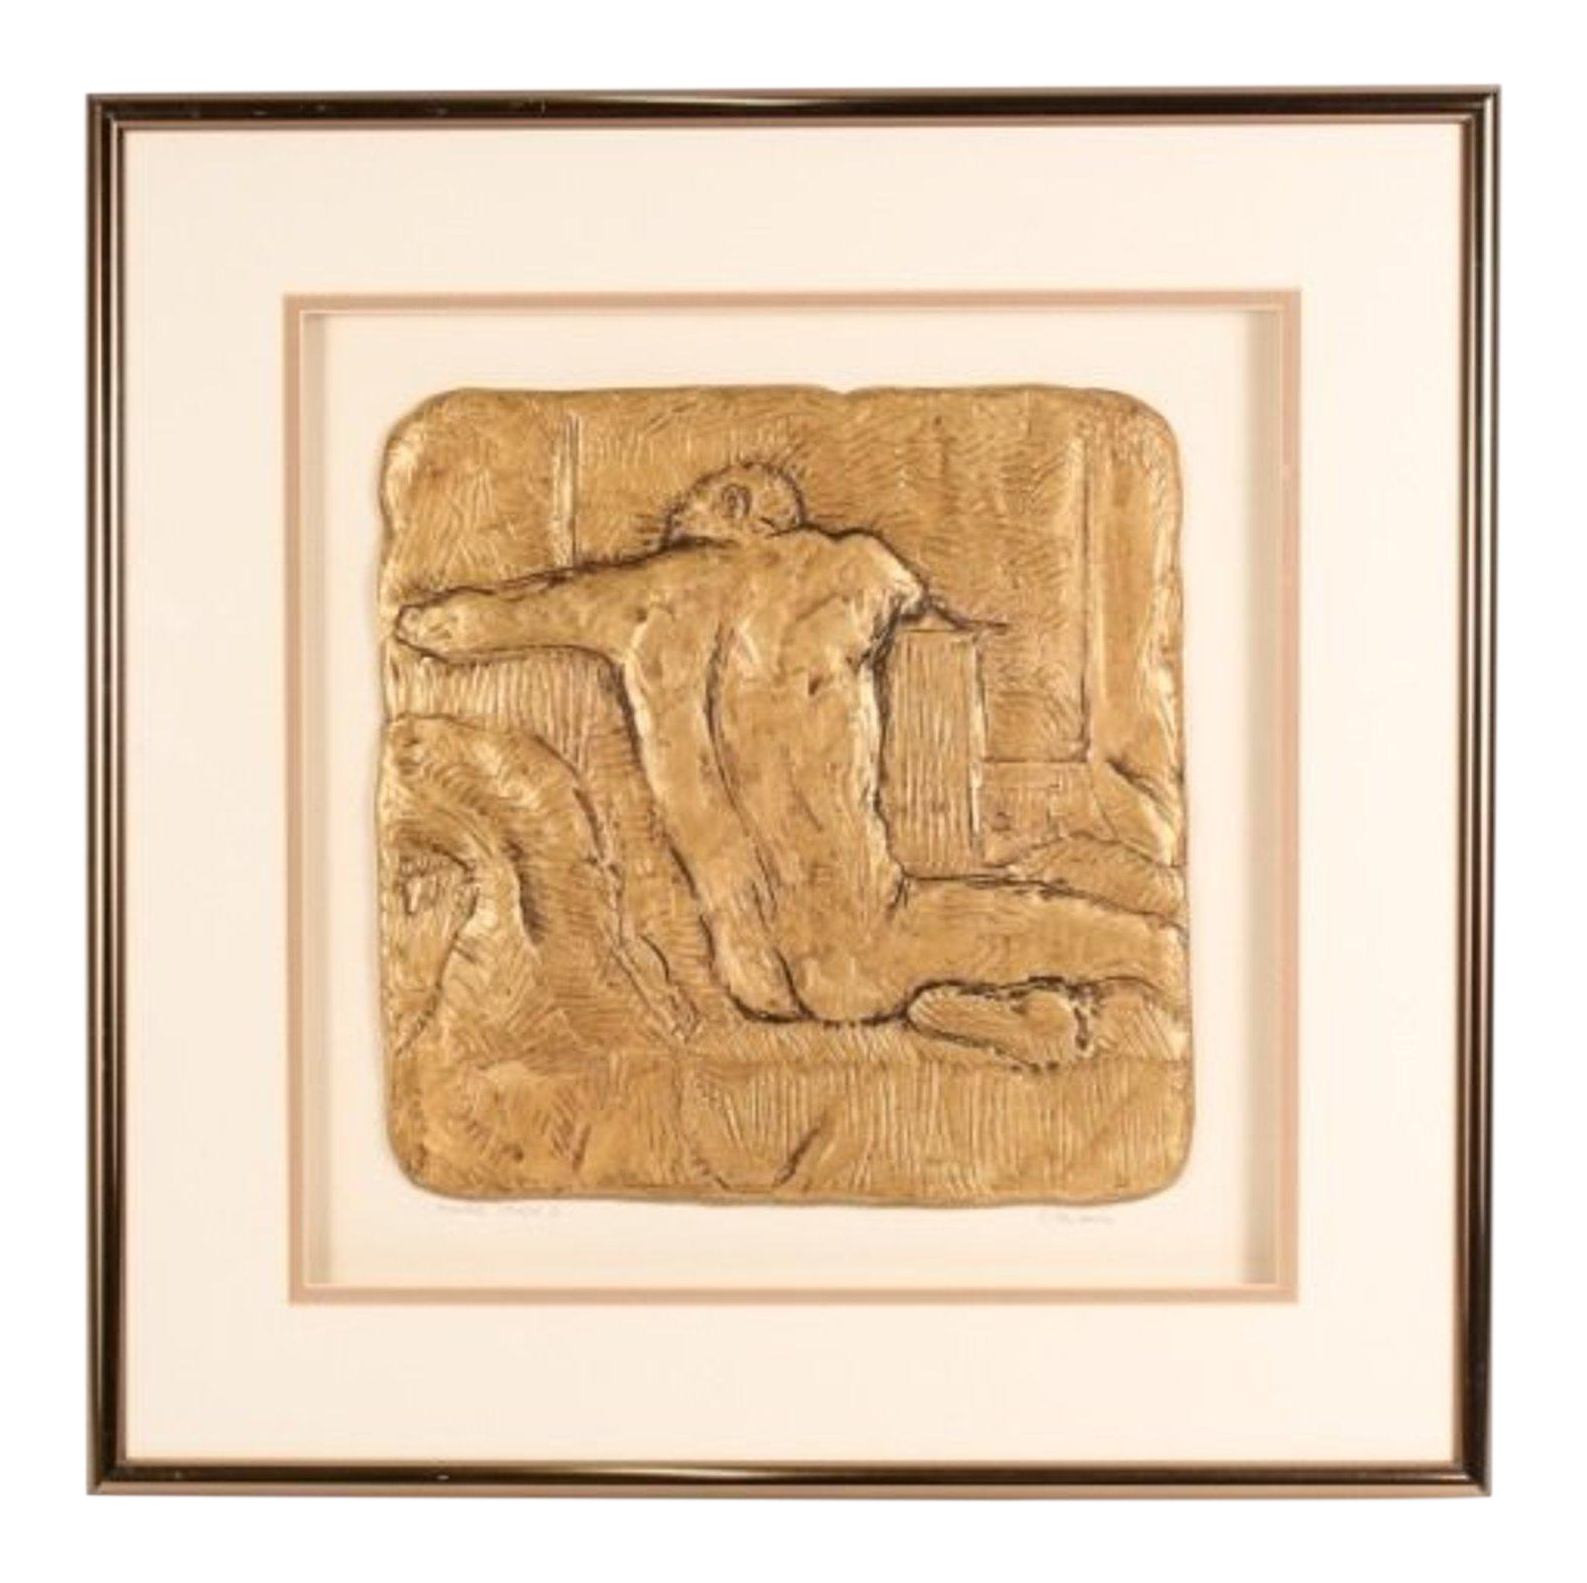 Sculptural drawing pencil. Figure study i framed